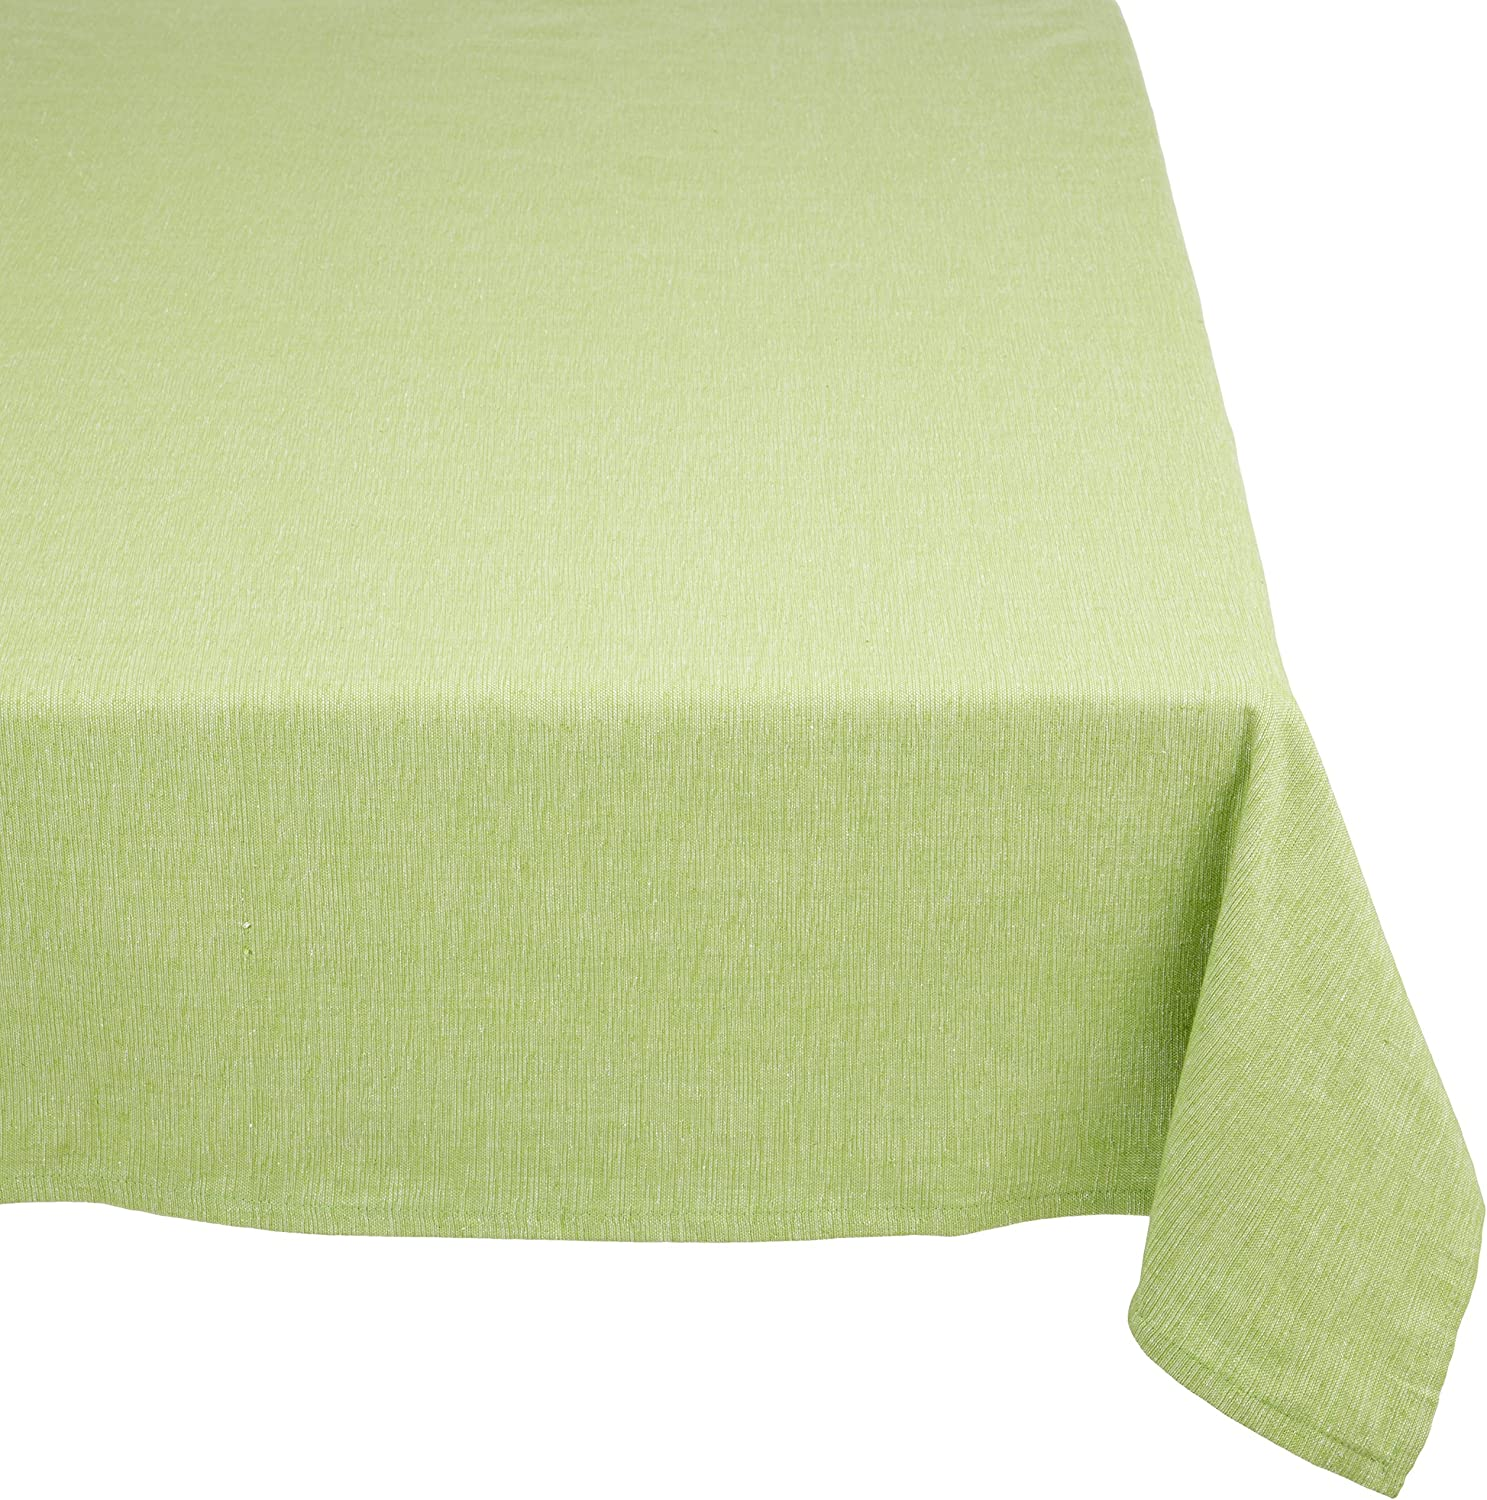 Mahogany T06T120GR Rectangle Tuscany Tablecloth, 60 by 120-Inch, Green